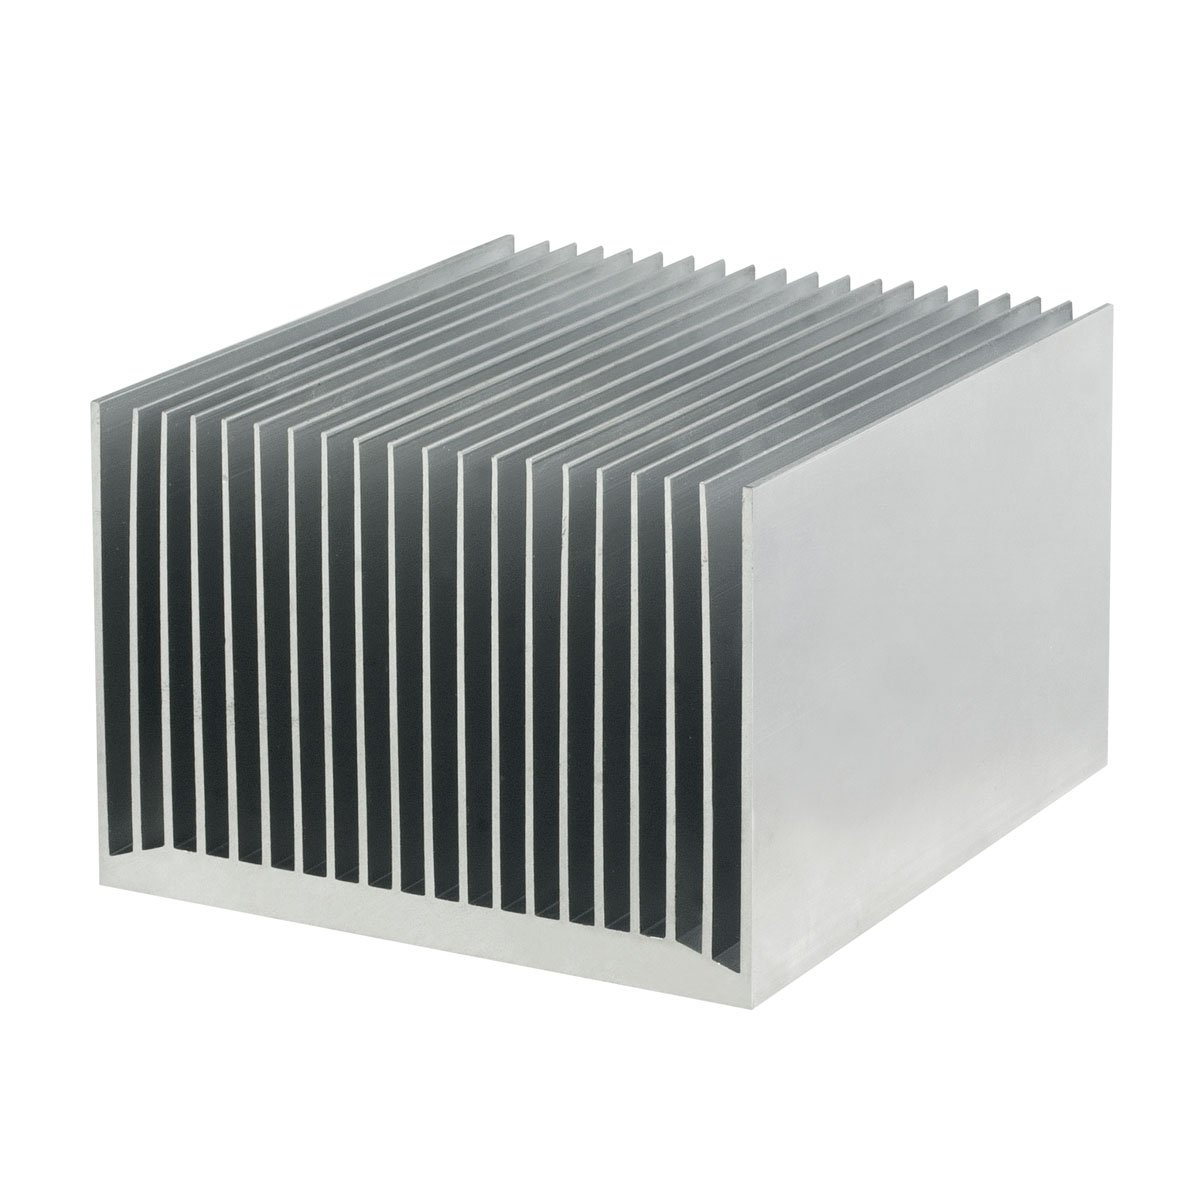 ARCTIC Alpine 11 Passive - Silent Intel CPU Cooler for all Intel CPU'S up to 47 Watts I Pre-Applied MX-2 Thermal Compound